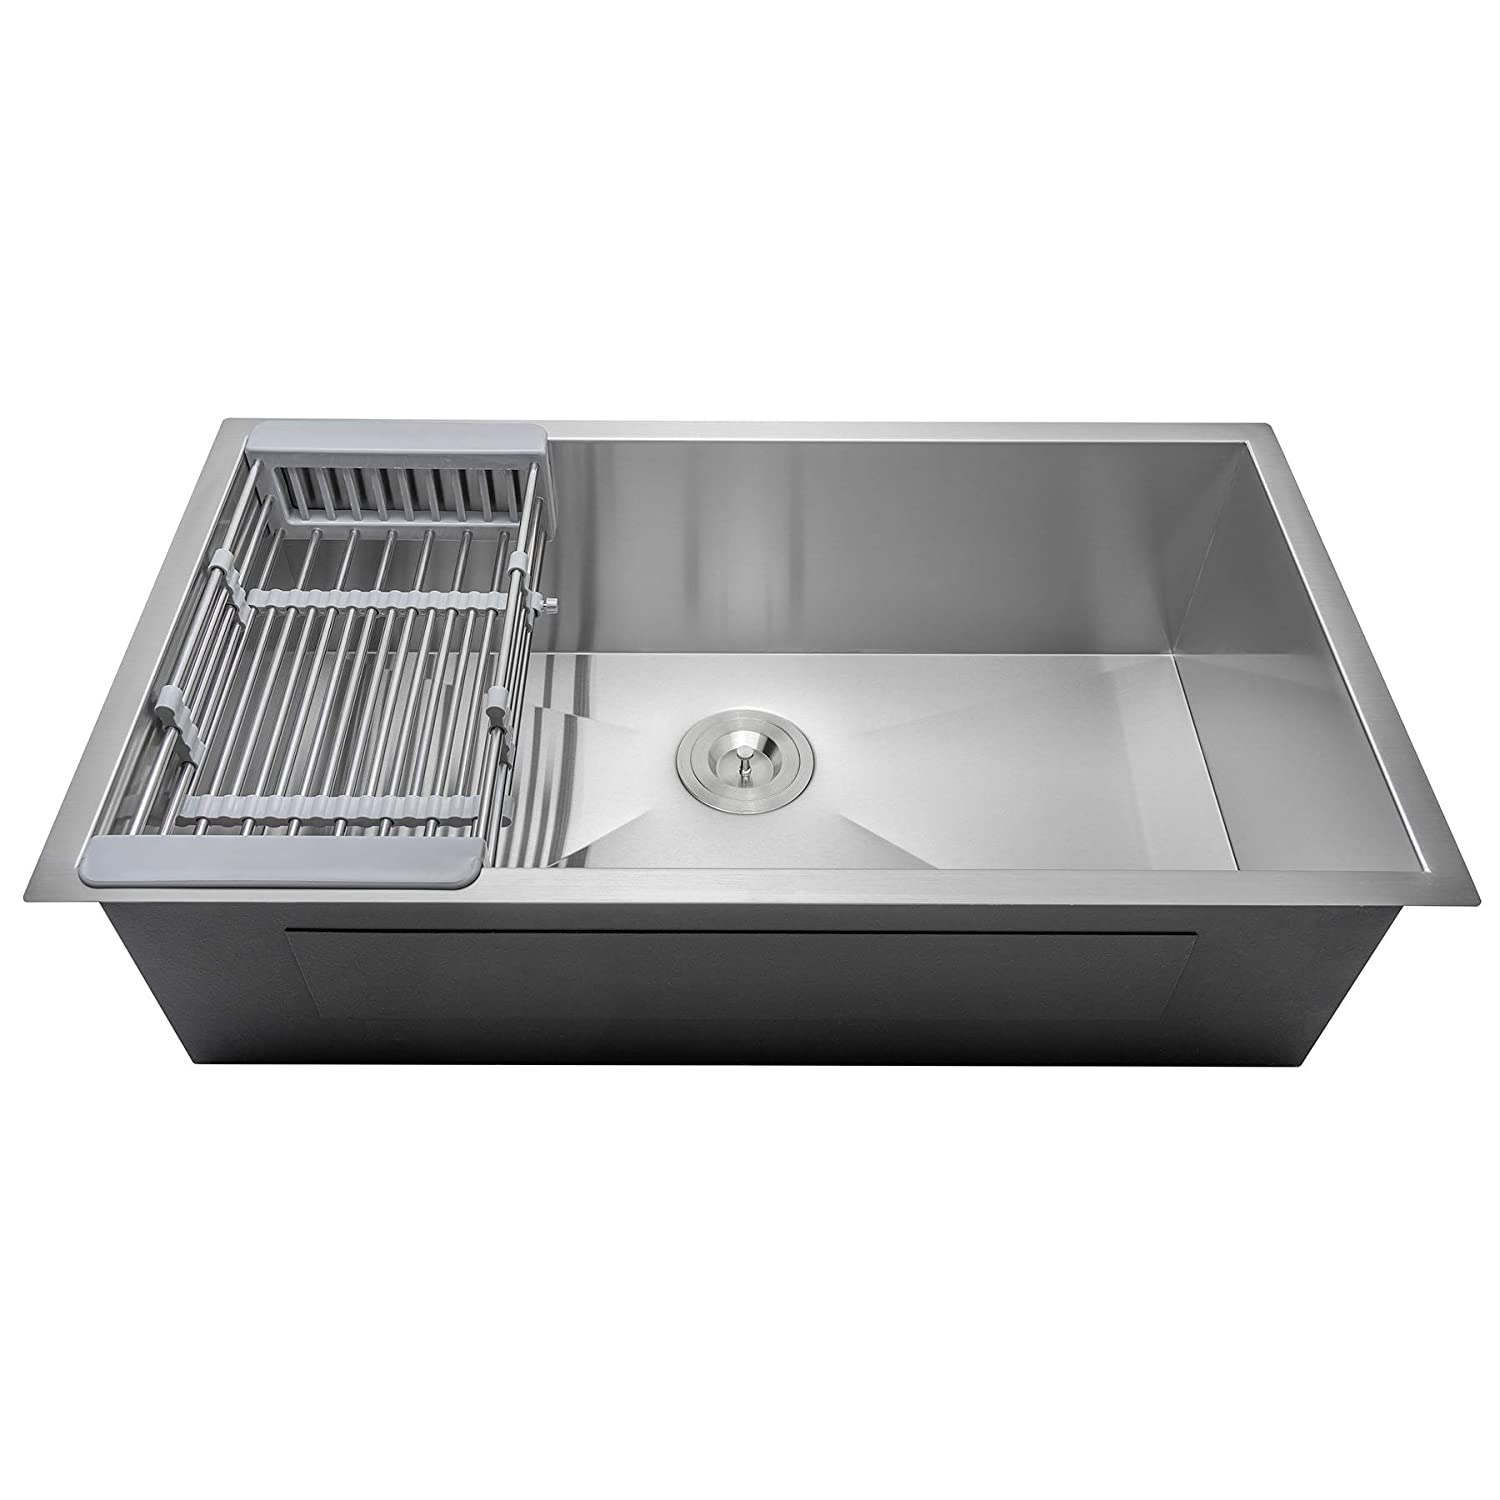 FB Handmade Kitchen Sink 33-inch Undermount Single Bowl Stainless Steel 33 x 22 x 9 with Dish Tray Drain Kit